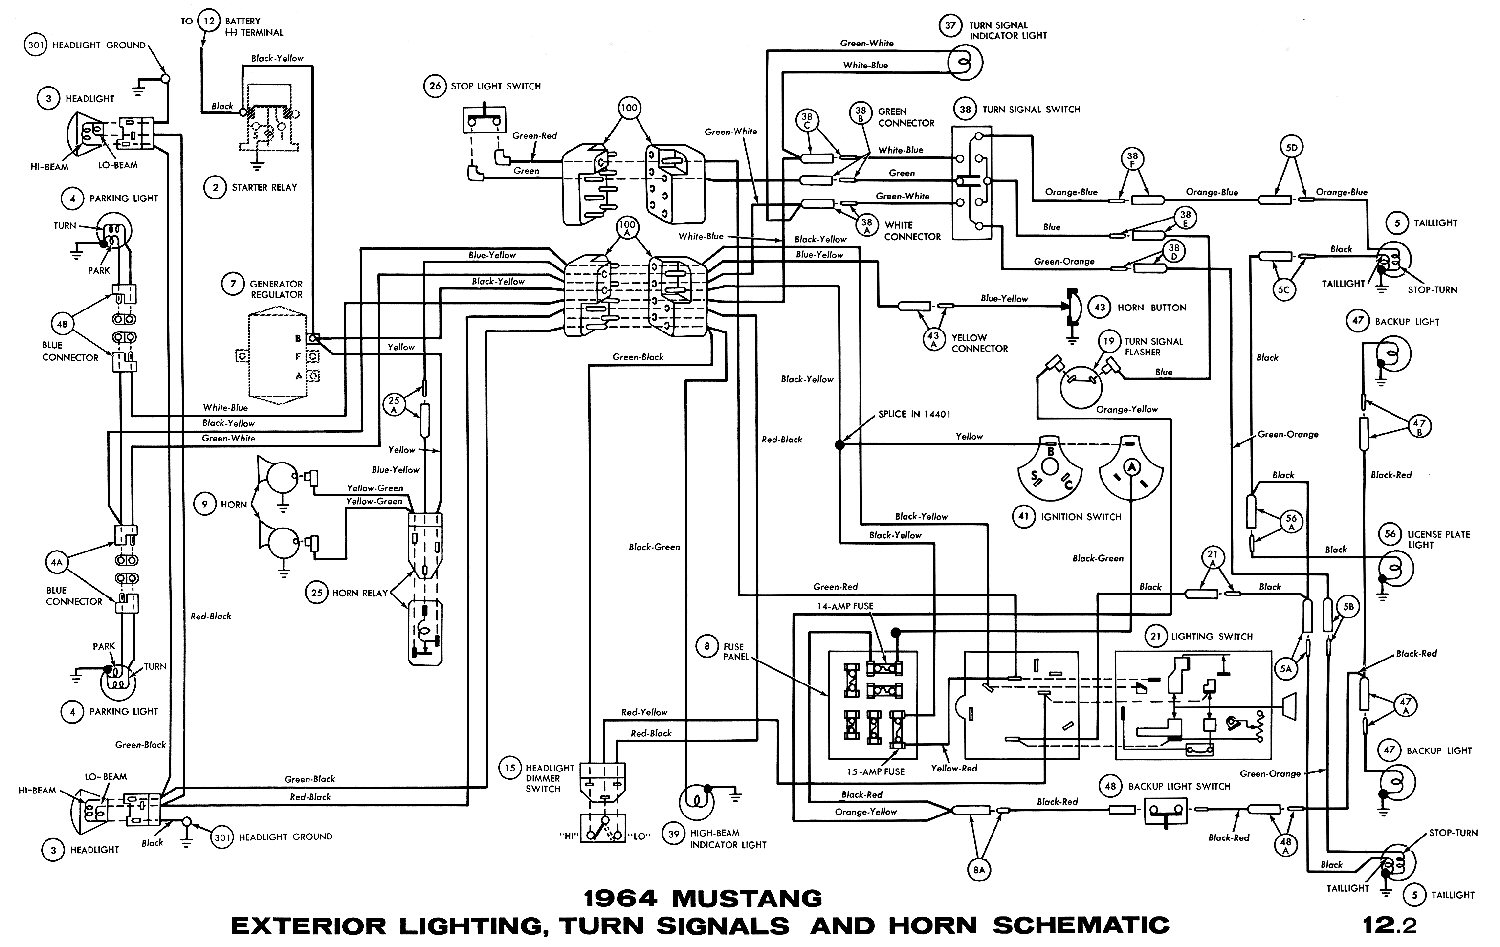 1964i 1964 mustang wiring diagrams average joe restoration 1966 mustang ignition switch wiring diagram at n-0.co